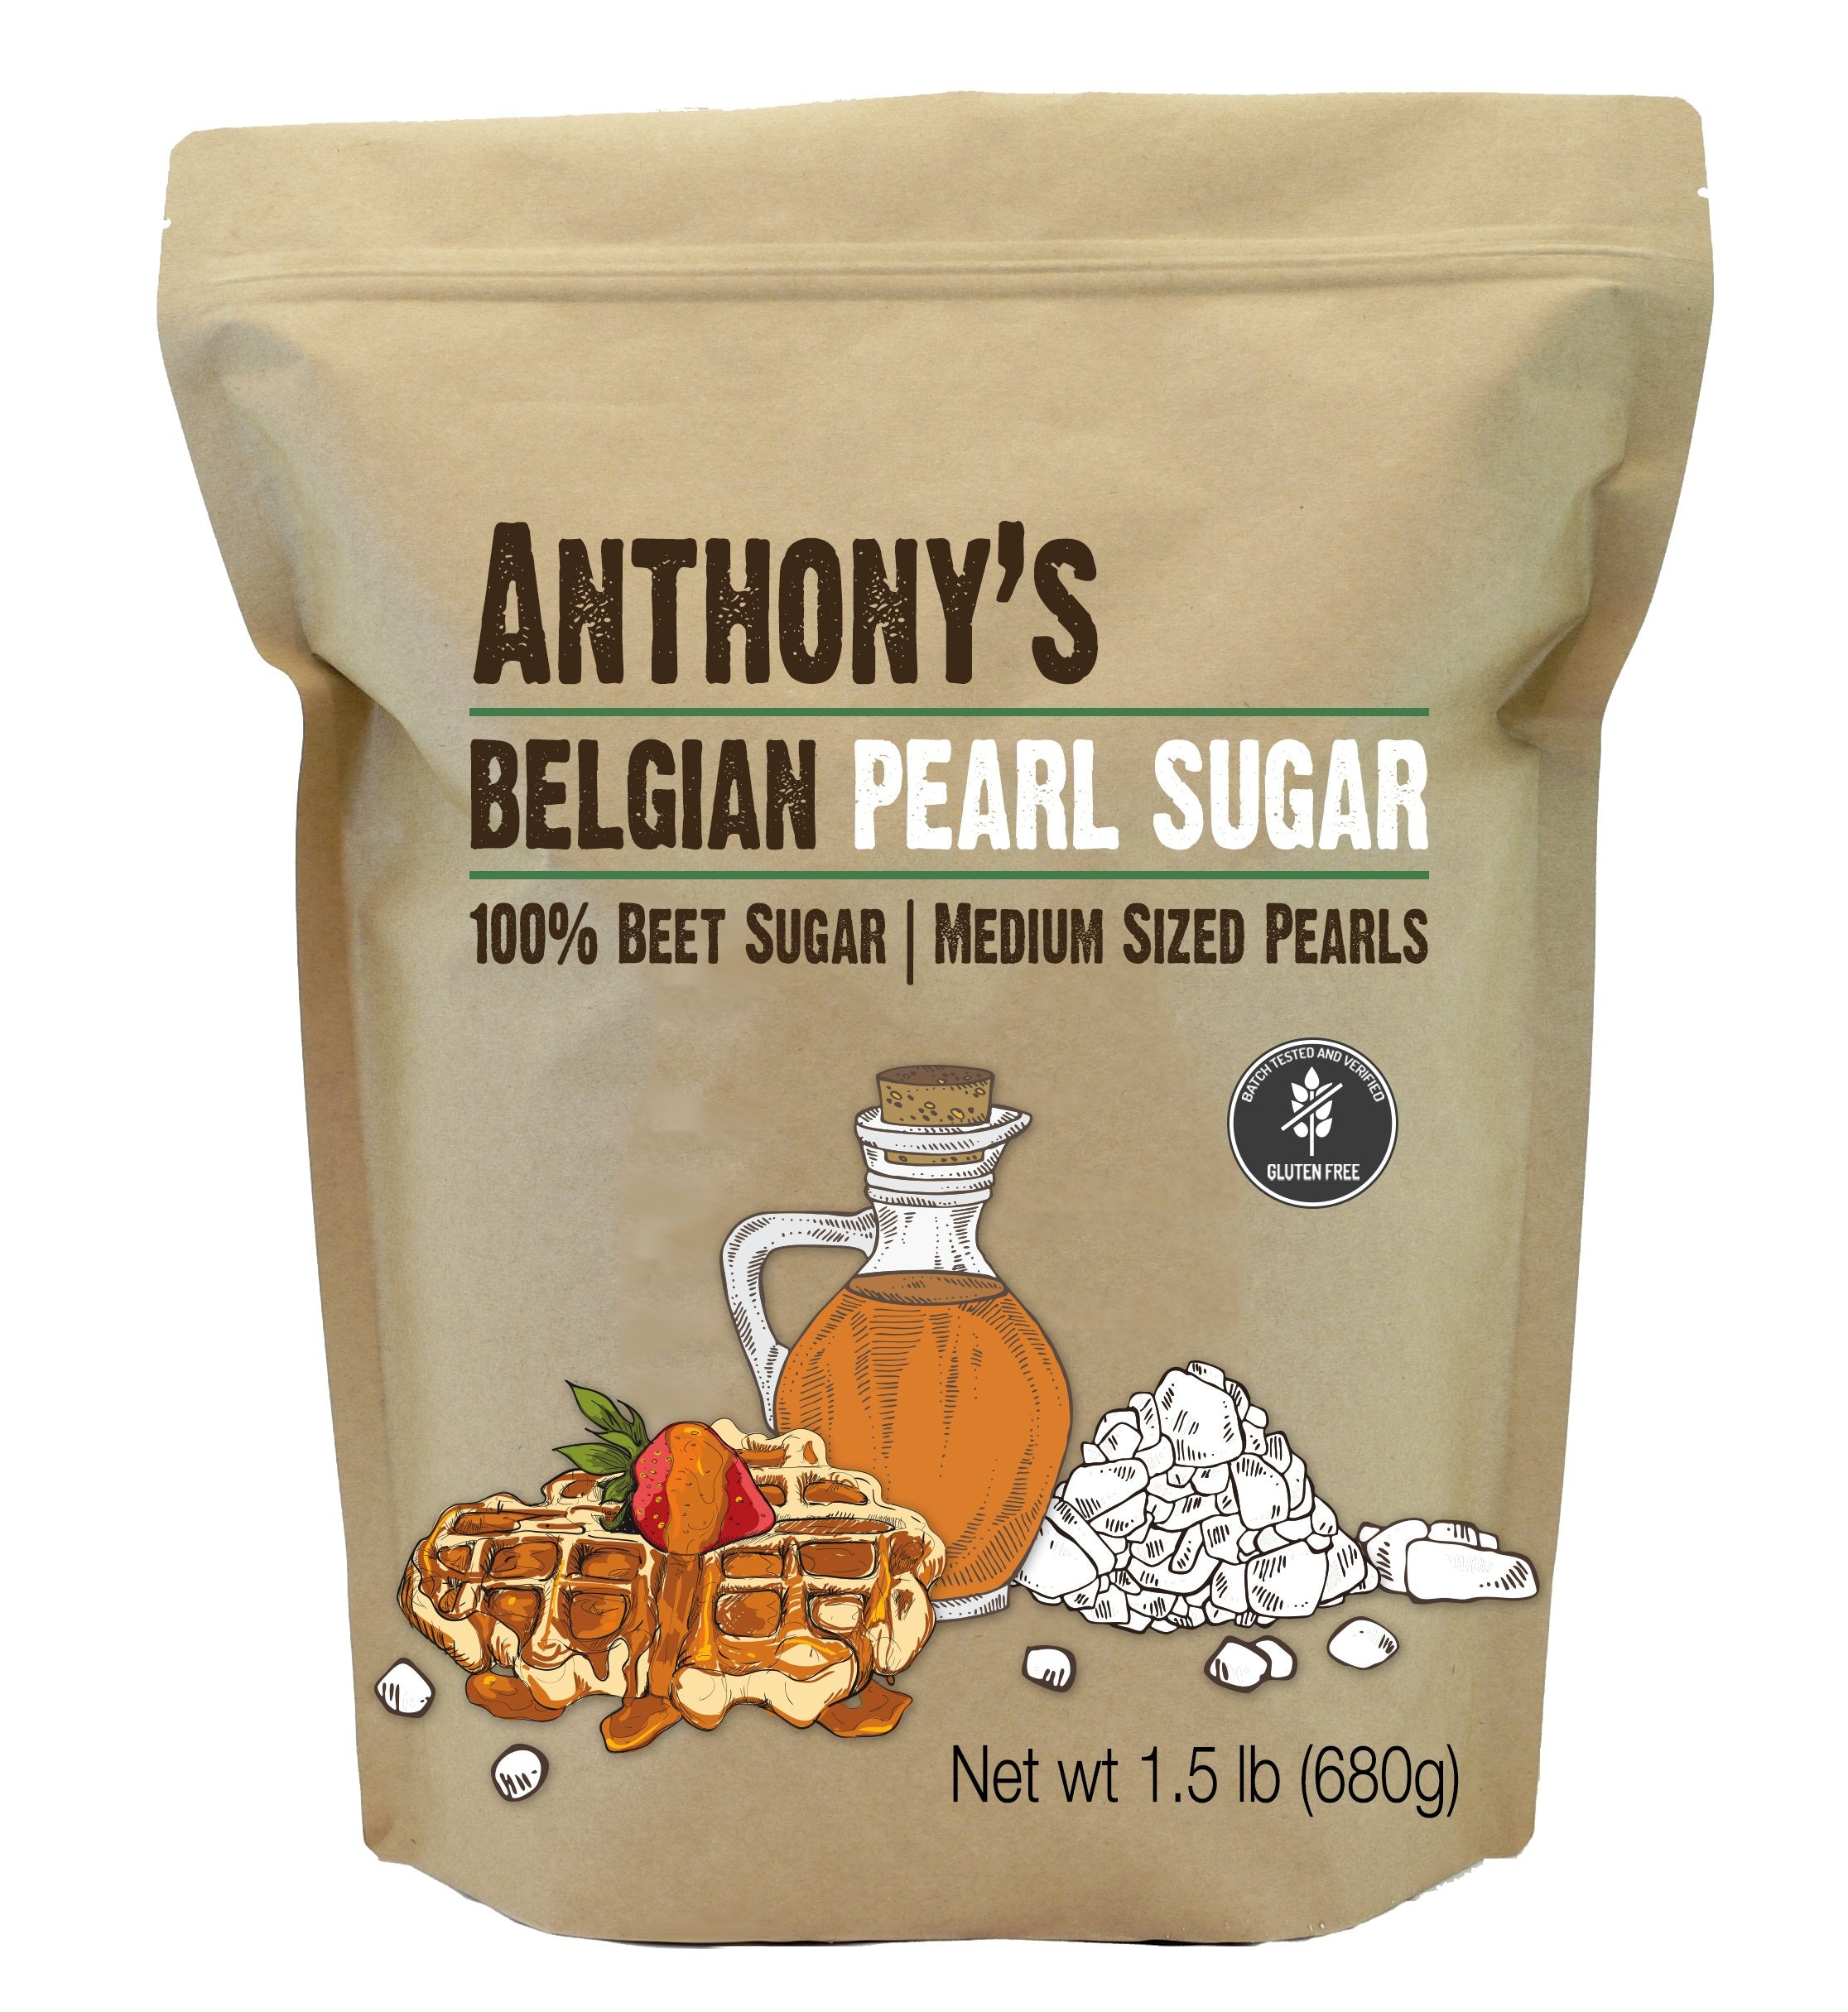 Belgian Pearl Sugar: Batch Tested and Verified Gluten Free, Medium Sized Pearls